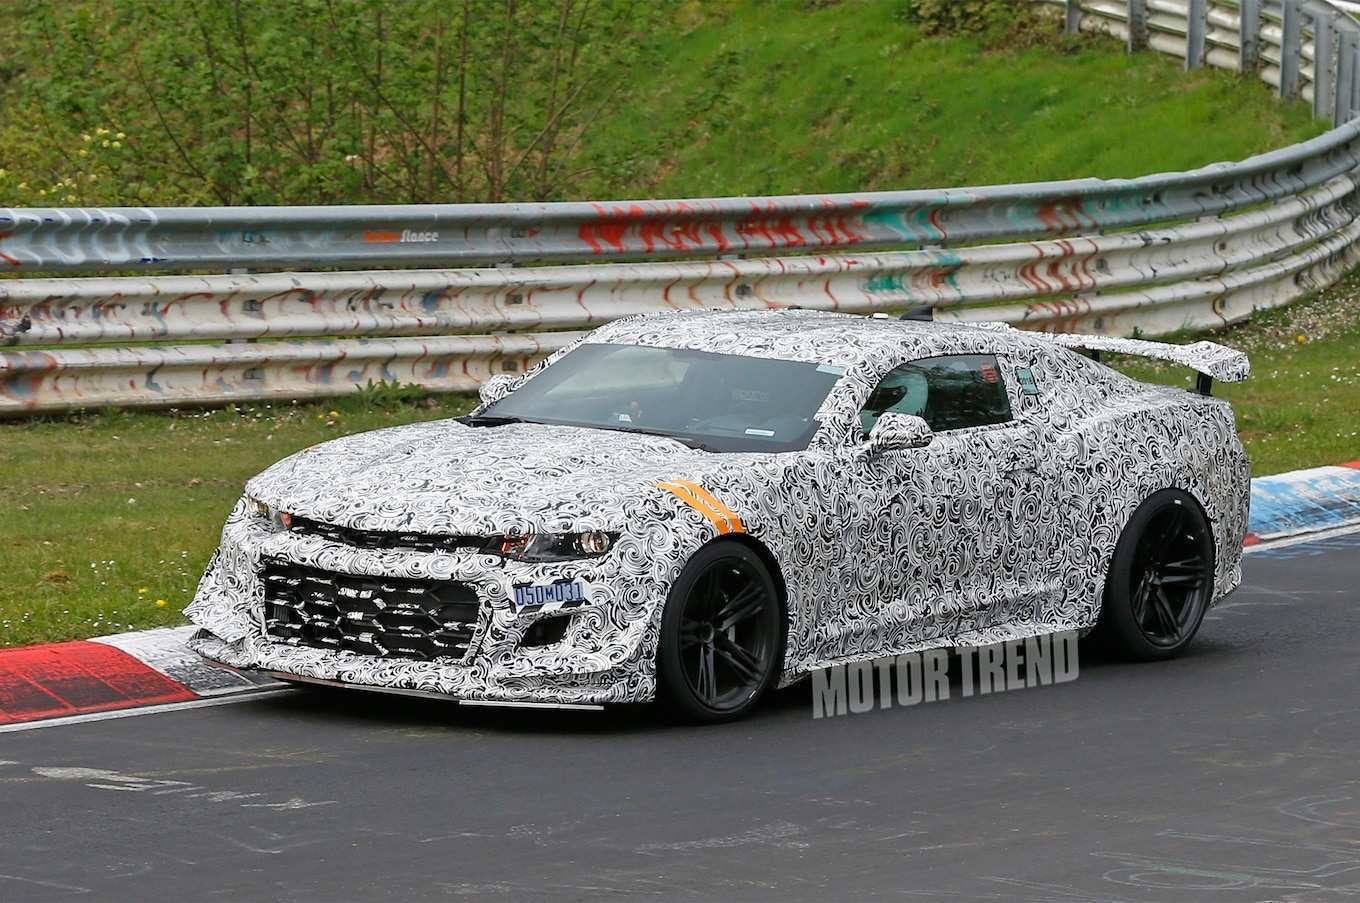 53 New 2020 Camaro Z28 Horsepower Price And Review